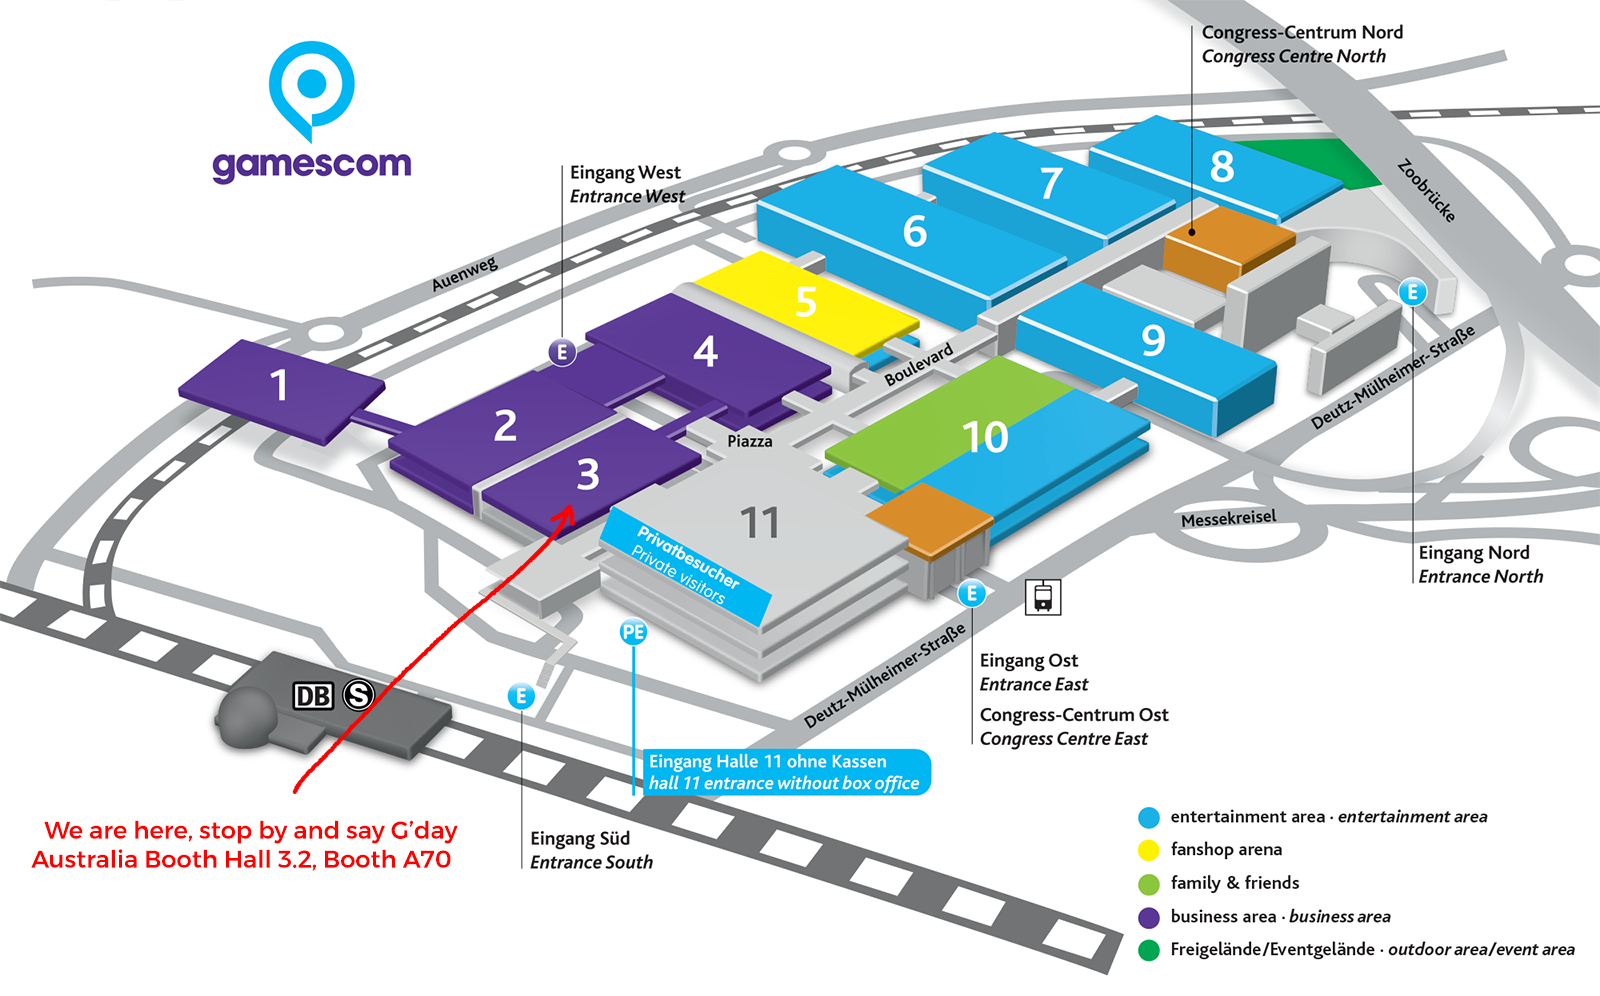 gamescom map